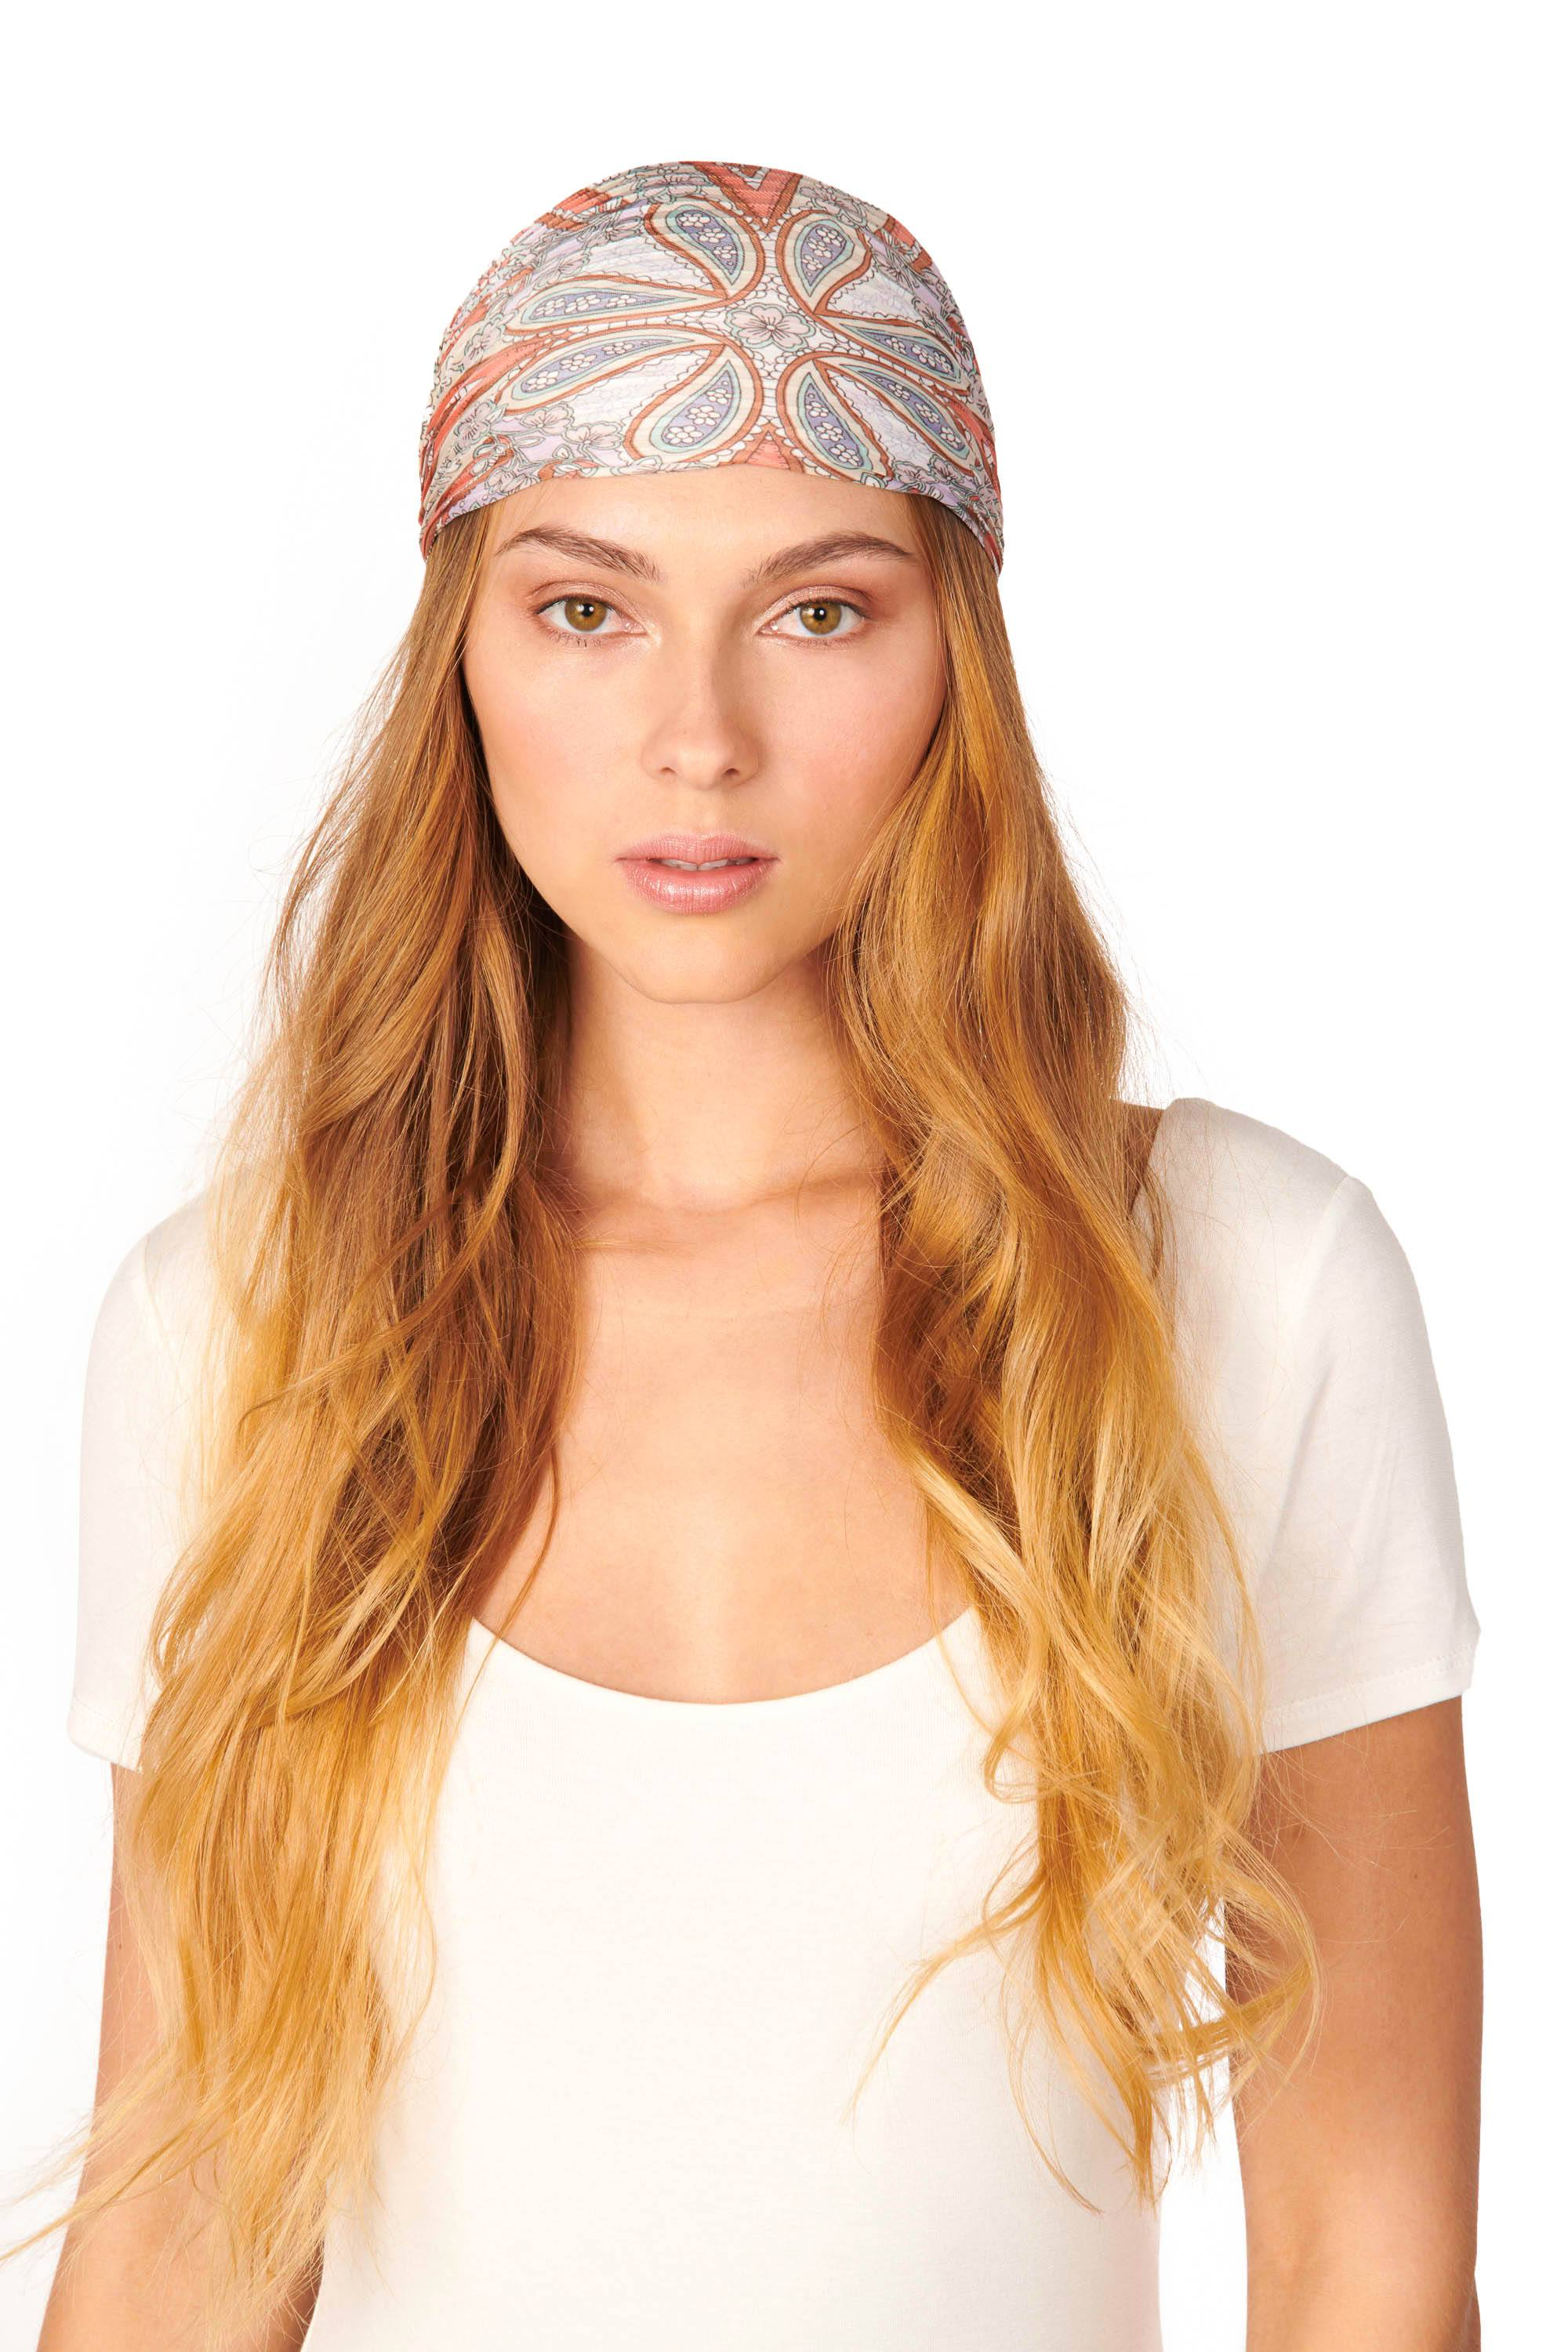 Accessories-Headbands